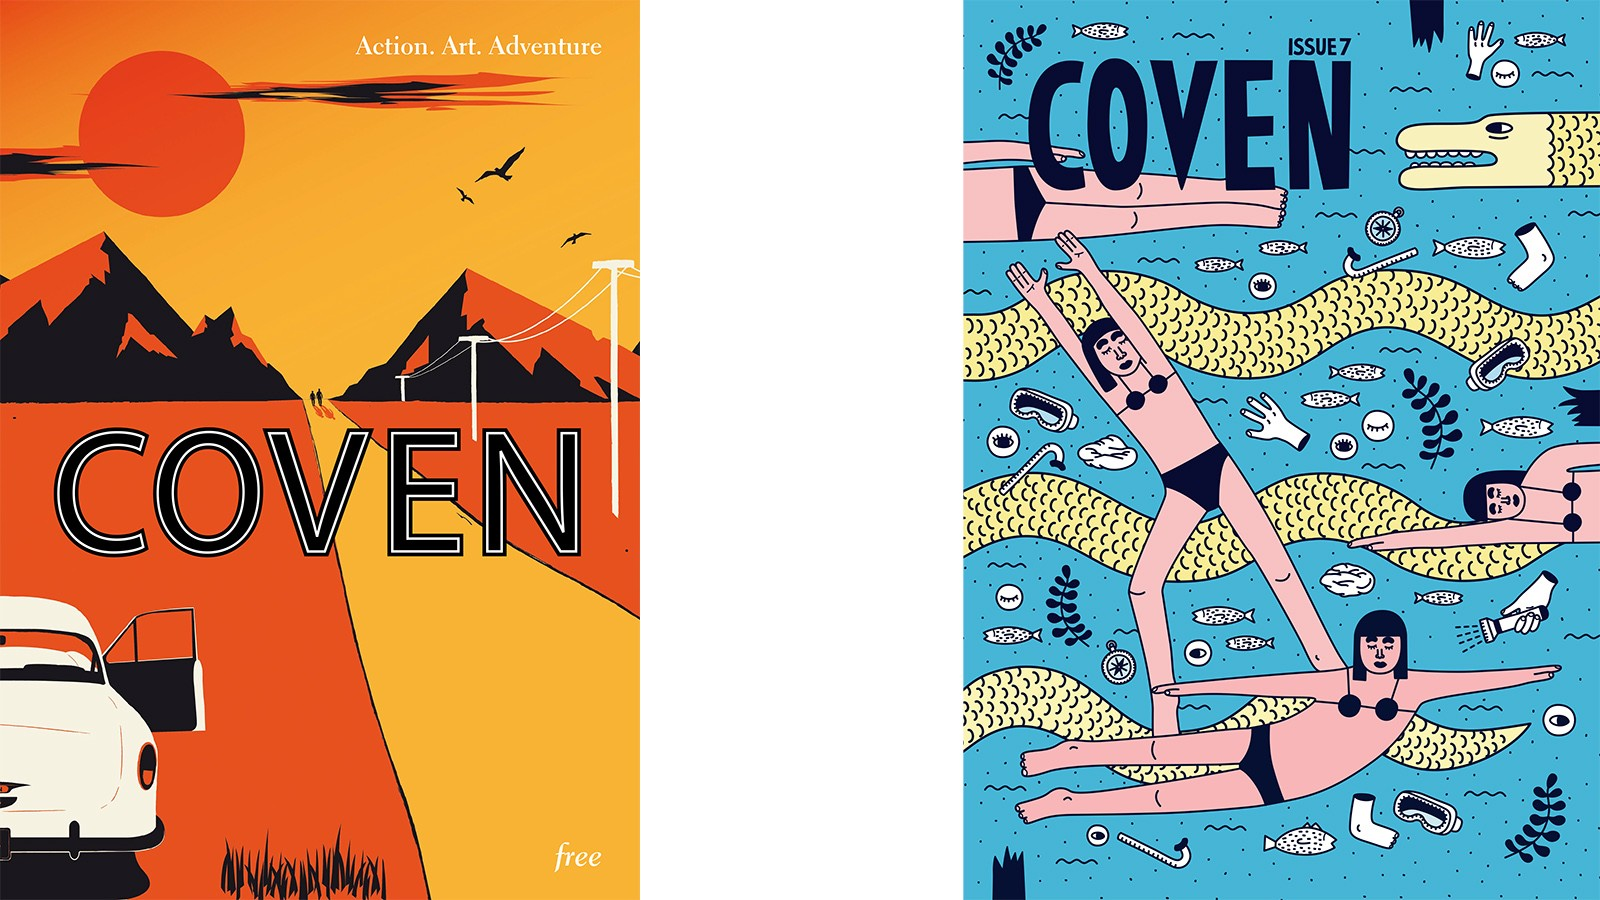 Elliott launched and ran Coven magazine for two years